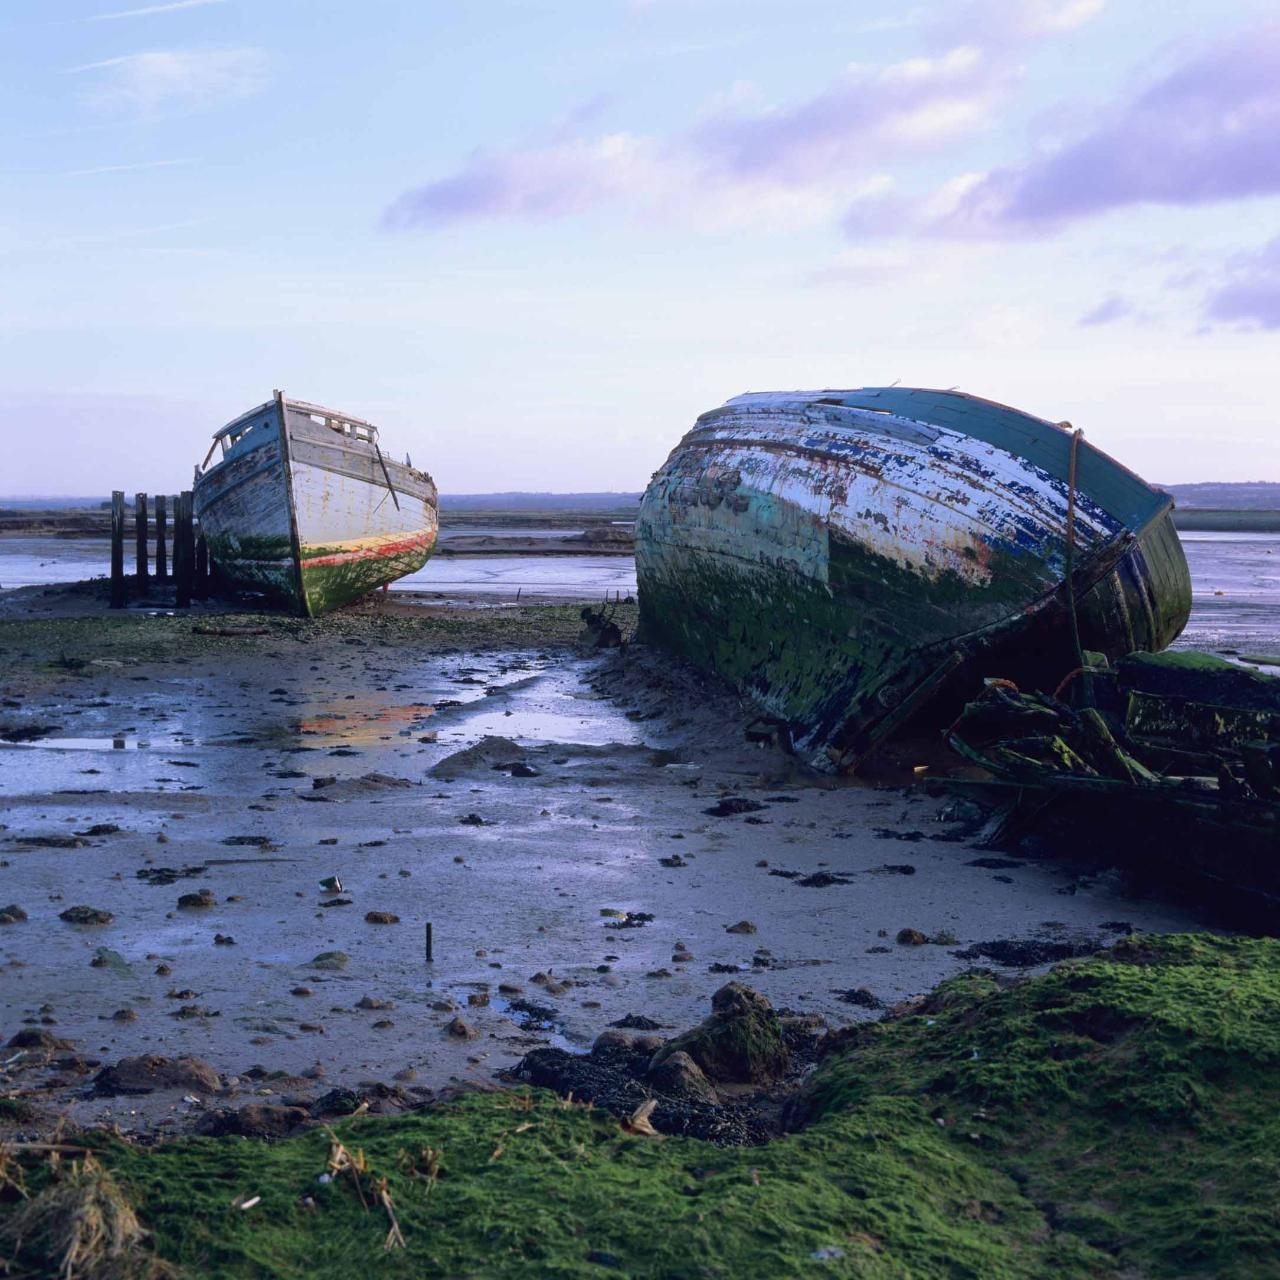 Decaying boats on the river Medway, U.K near Upnor, 1998.  Bronica SQAi, Zenzanon PS 80mm, Fuji...